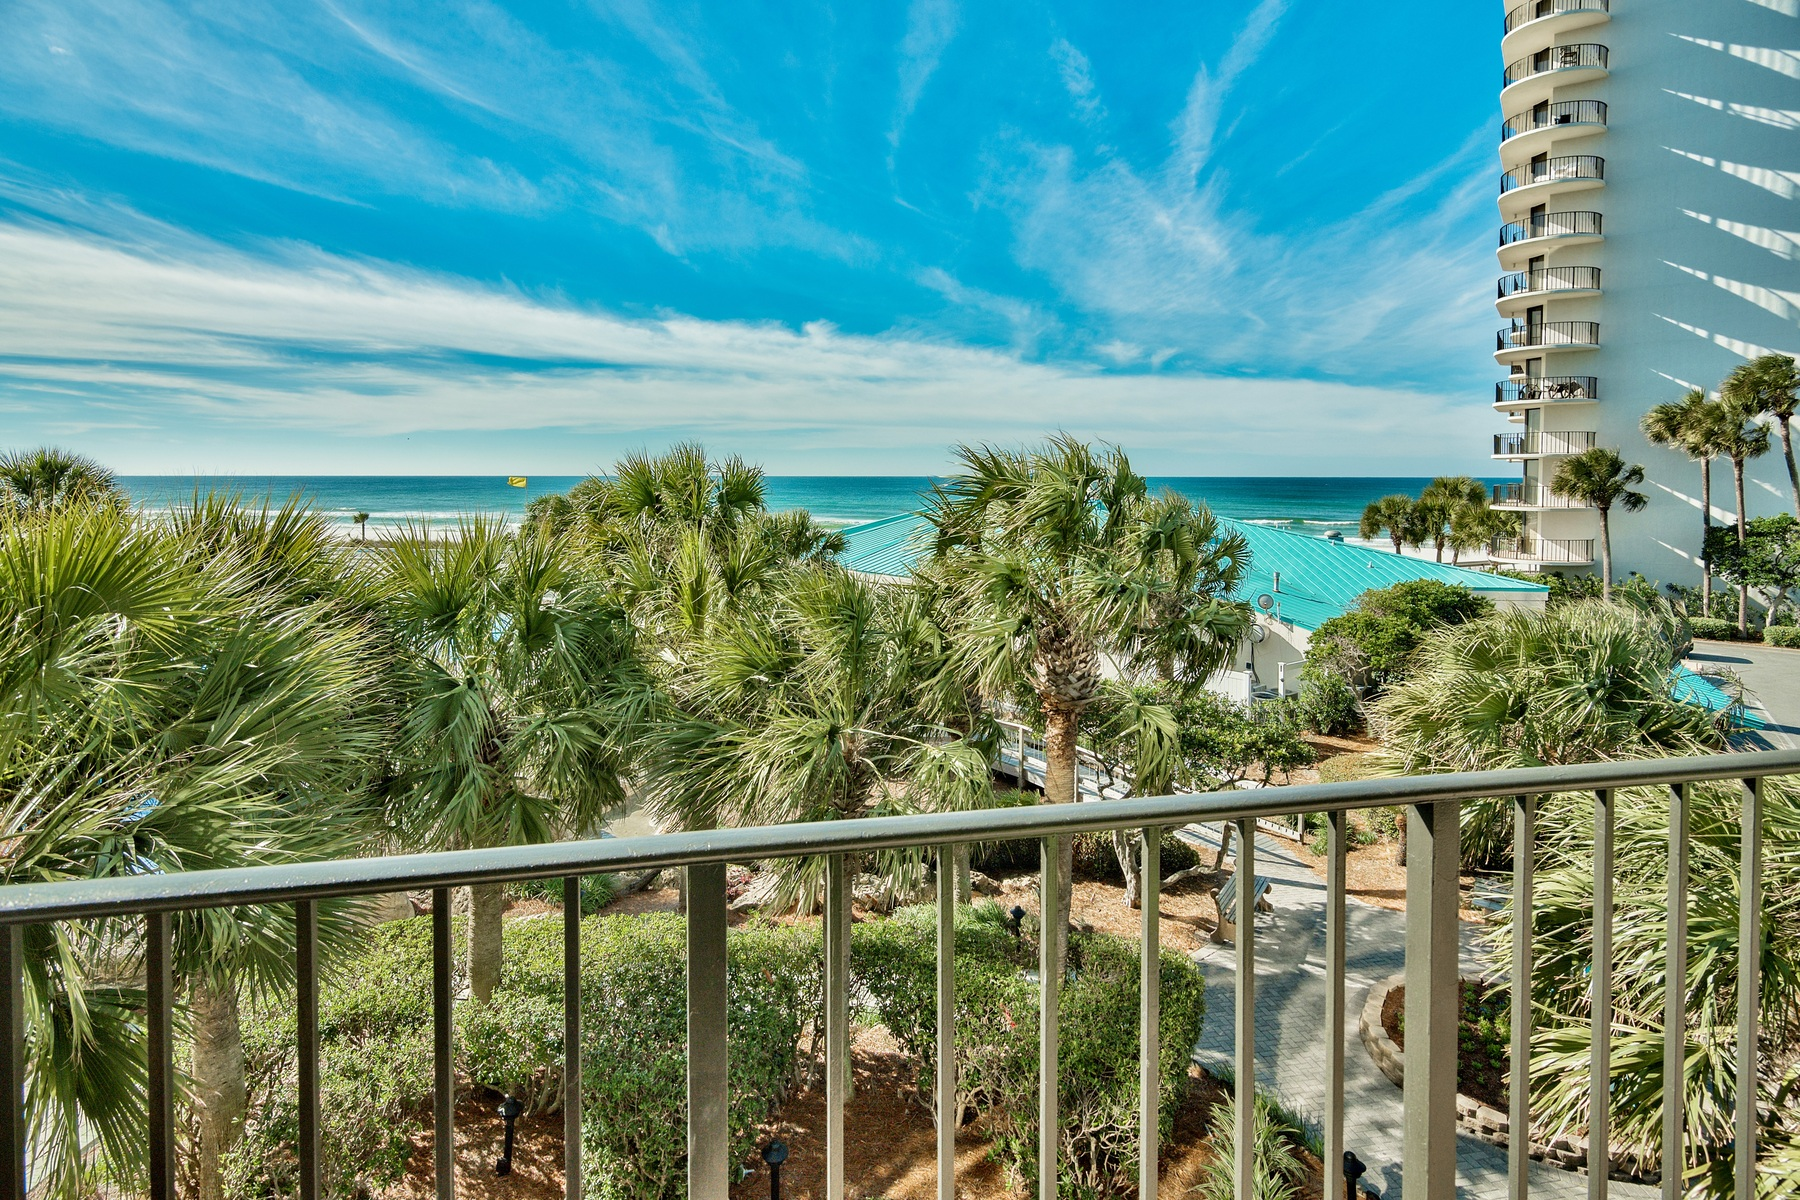 コンドミニアム のために 売買 アット UNIQUE WRAP AROUND BALCONY AND UNOBSTRUCTED GULF VIEWS 11483 Front Beach Road 212 Panama City Beach, フロリダ, 32407 アメリカ合衆国